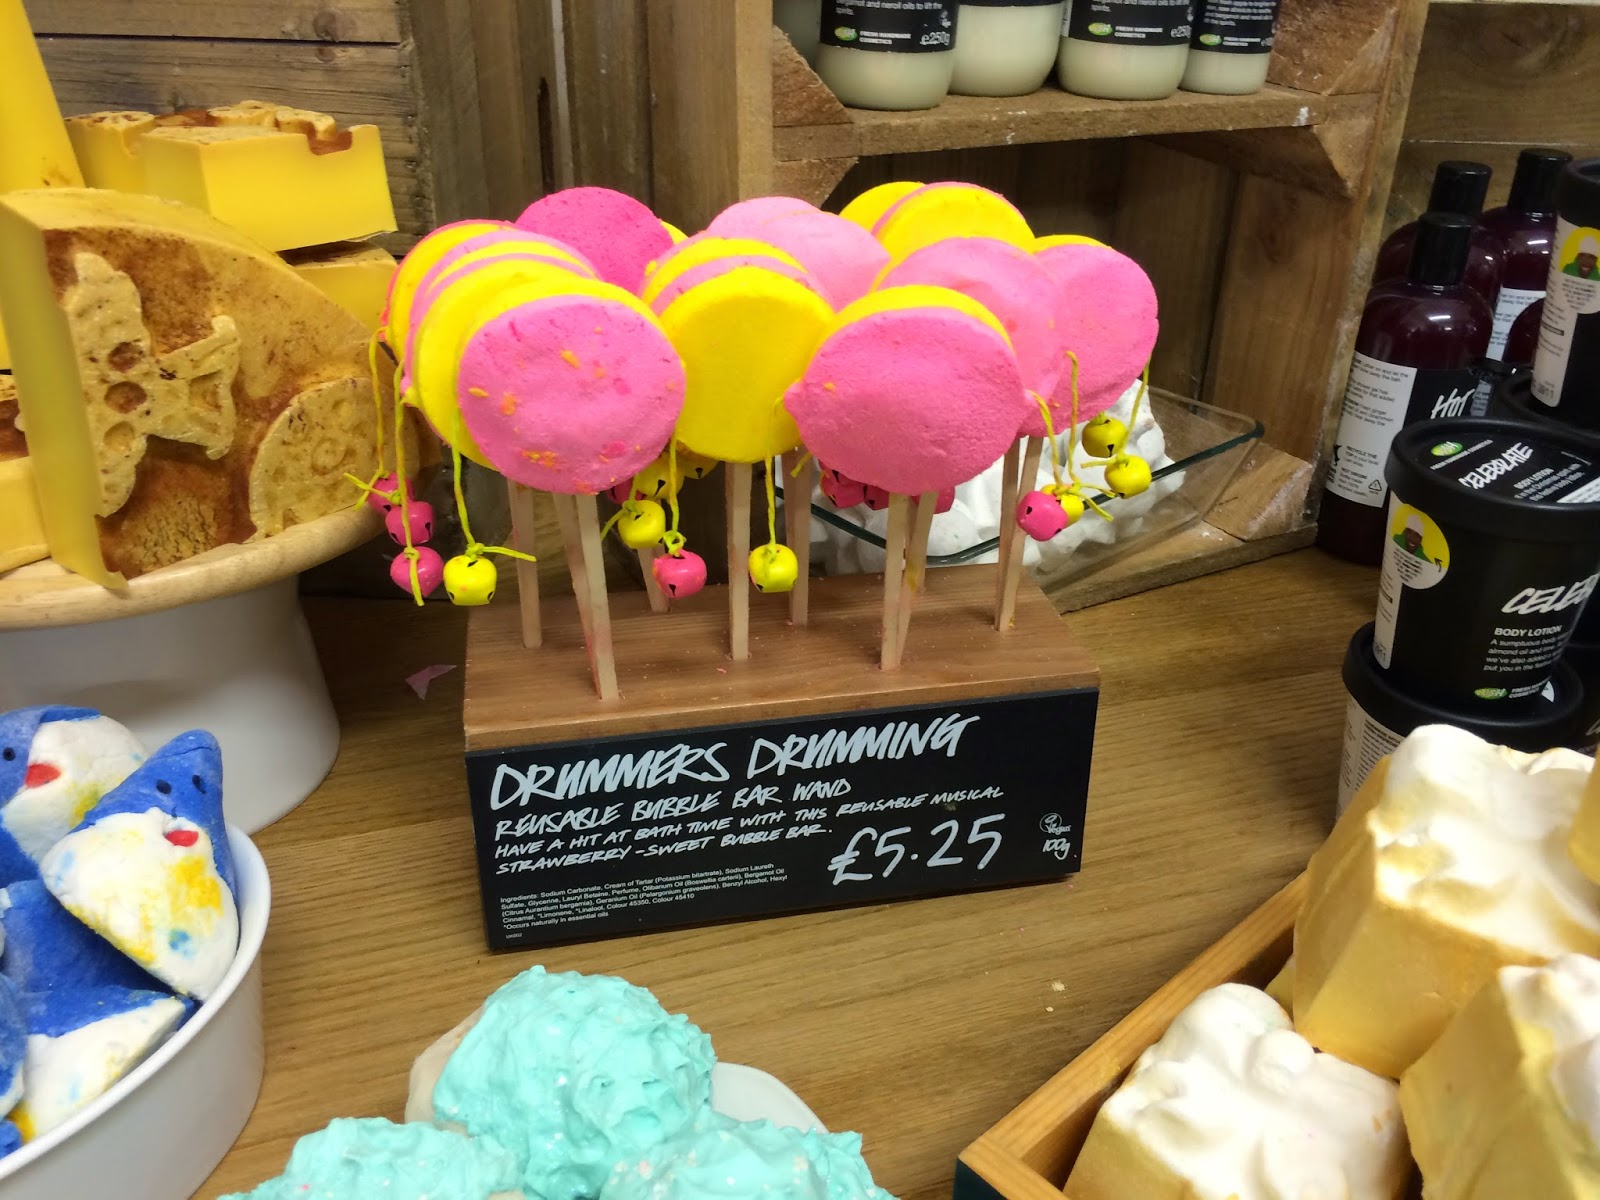 Drummers Drumming Bubble Bar by Lush Cosmetics